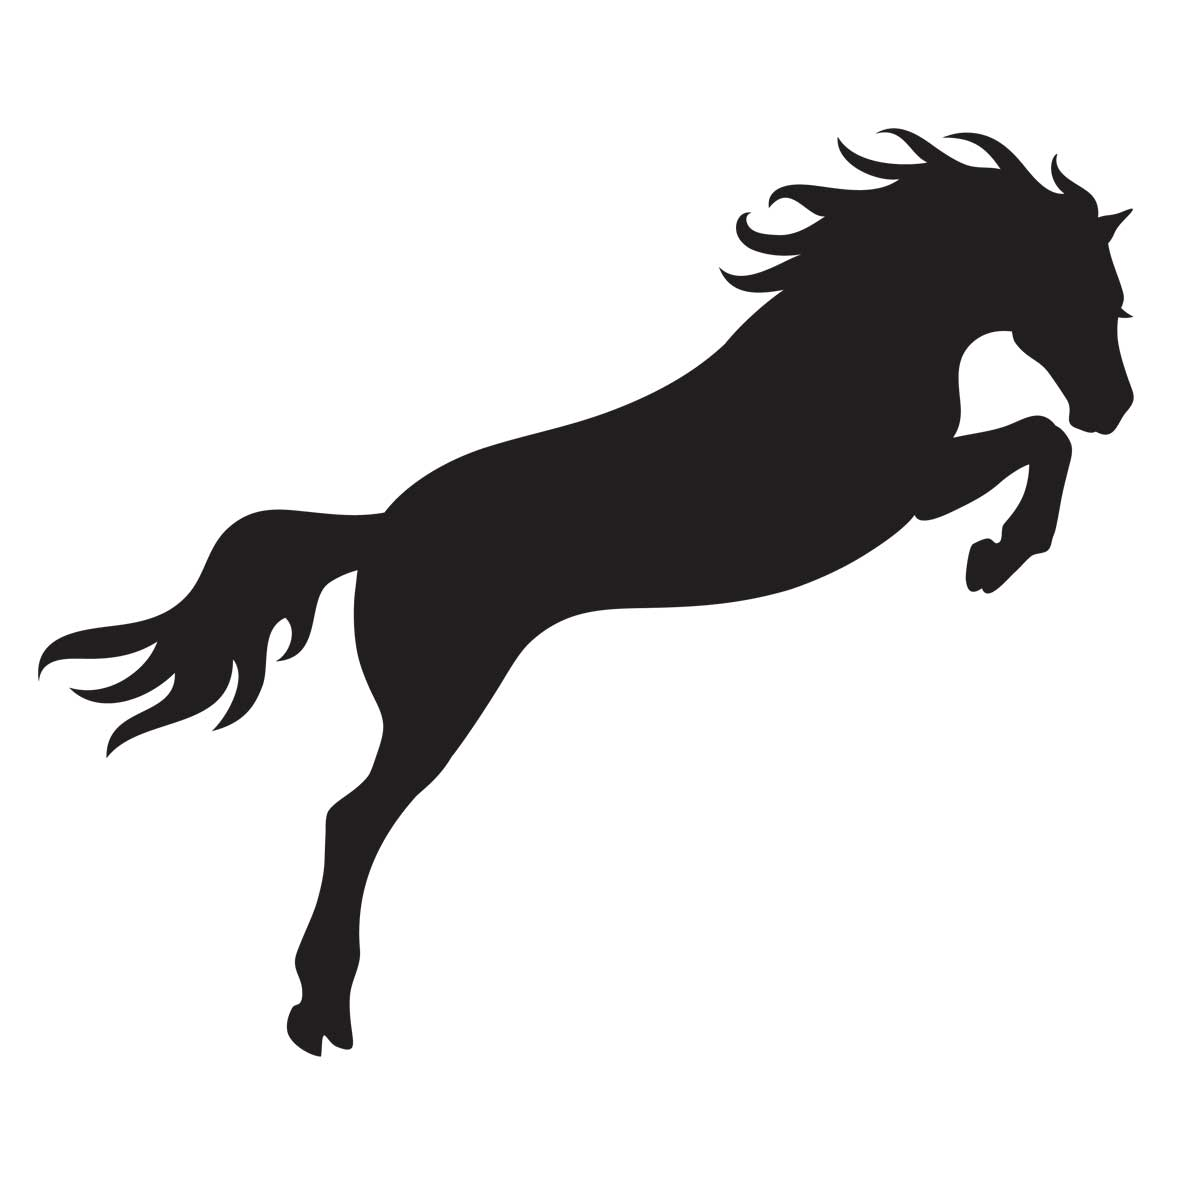 Jumping Horse Stencil For Glitter Tattoos For Horses